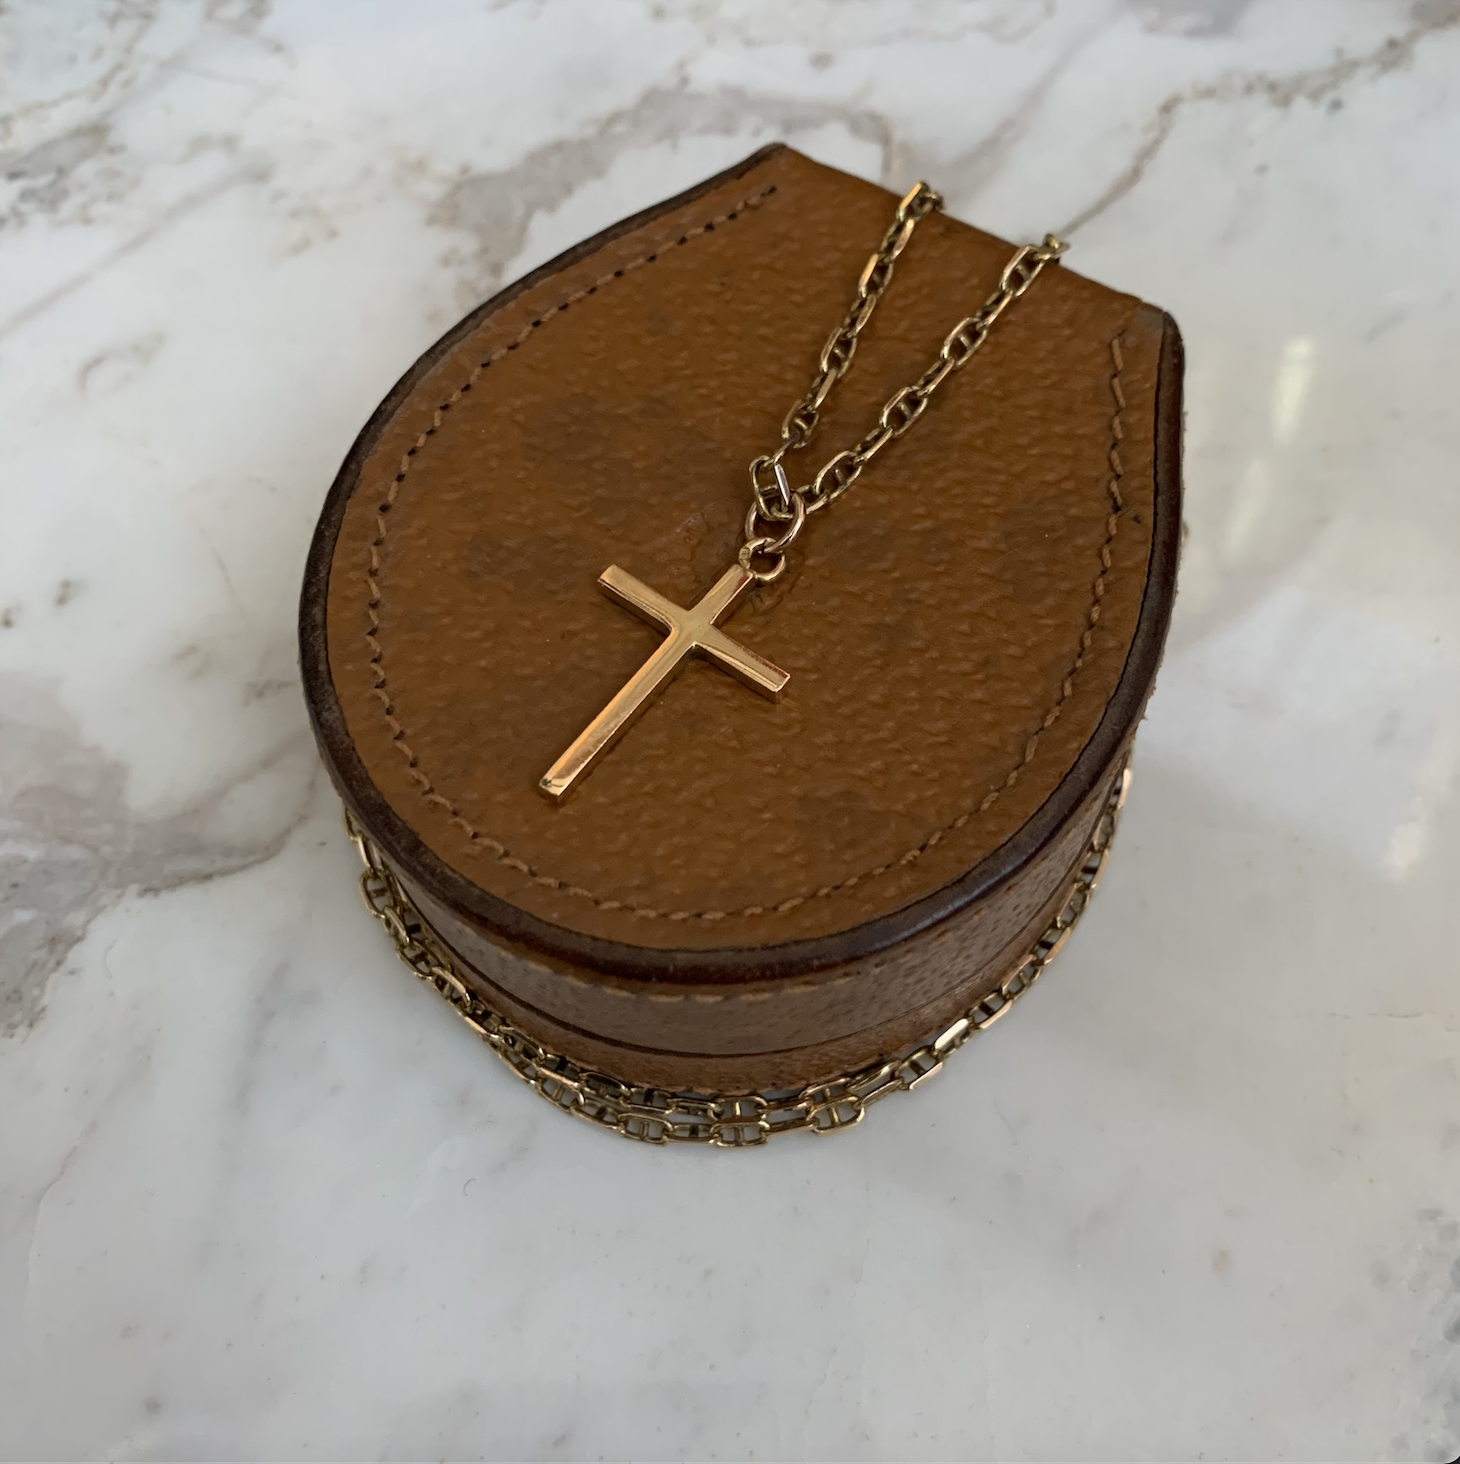 Gold cross necklace.